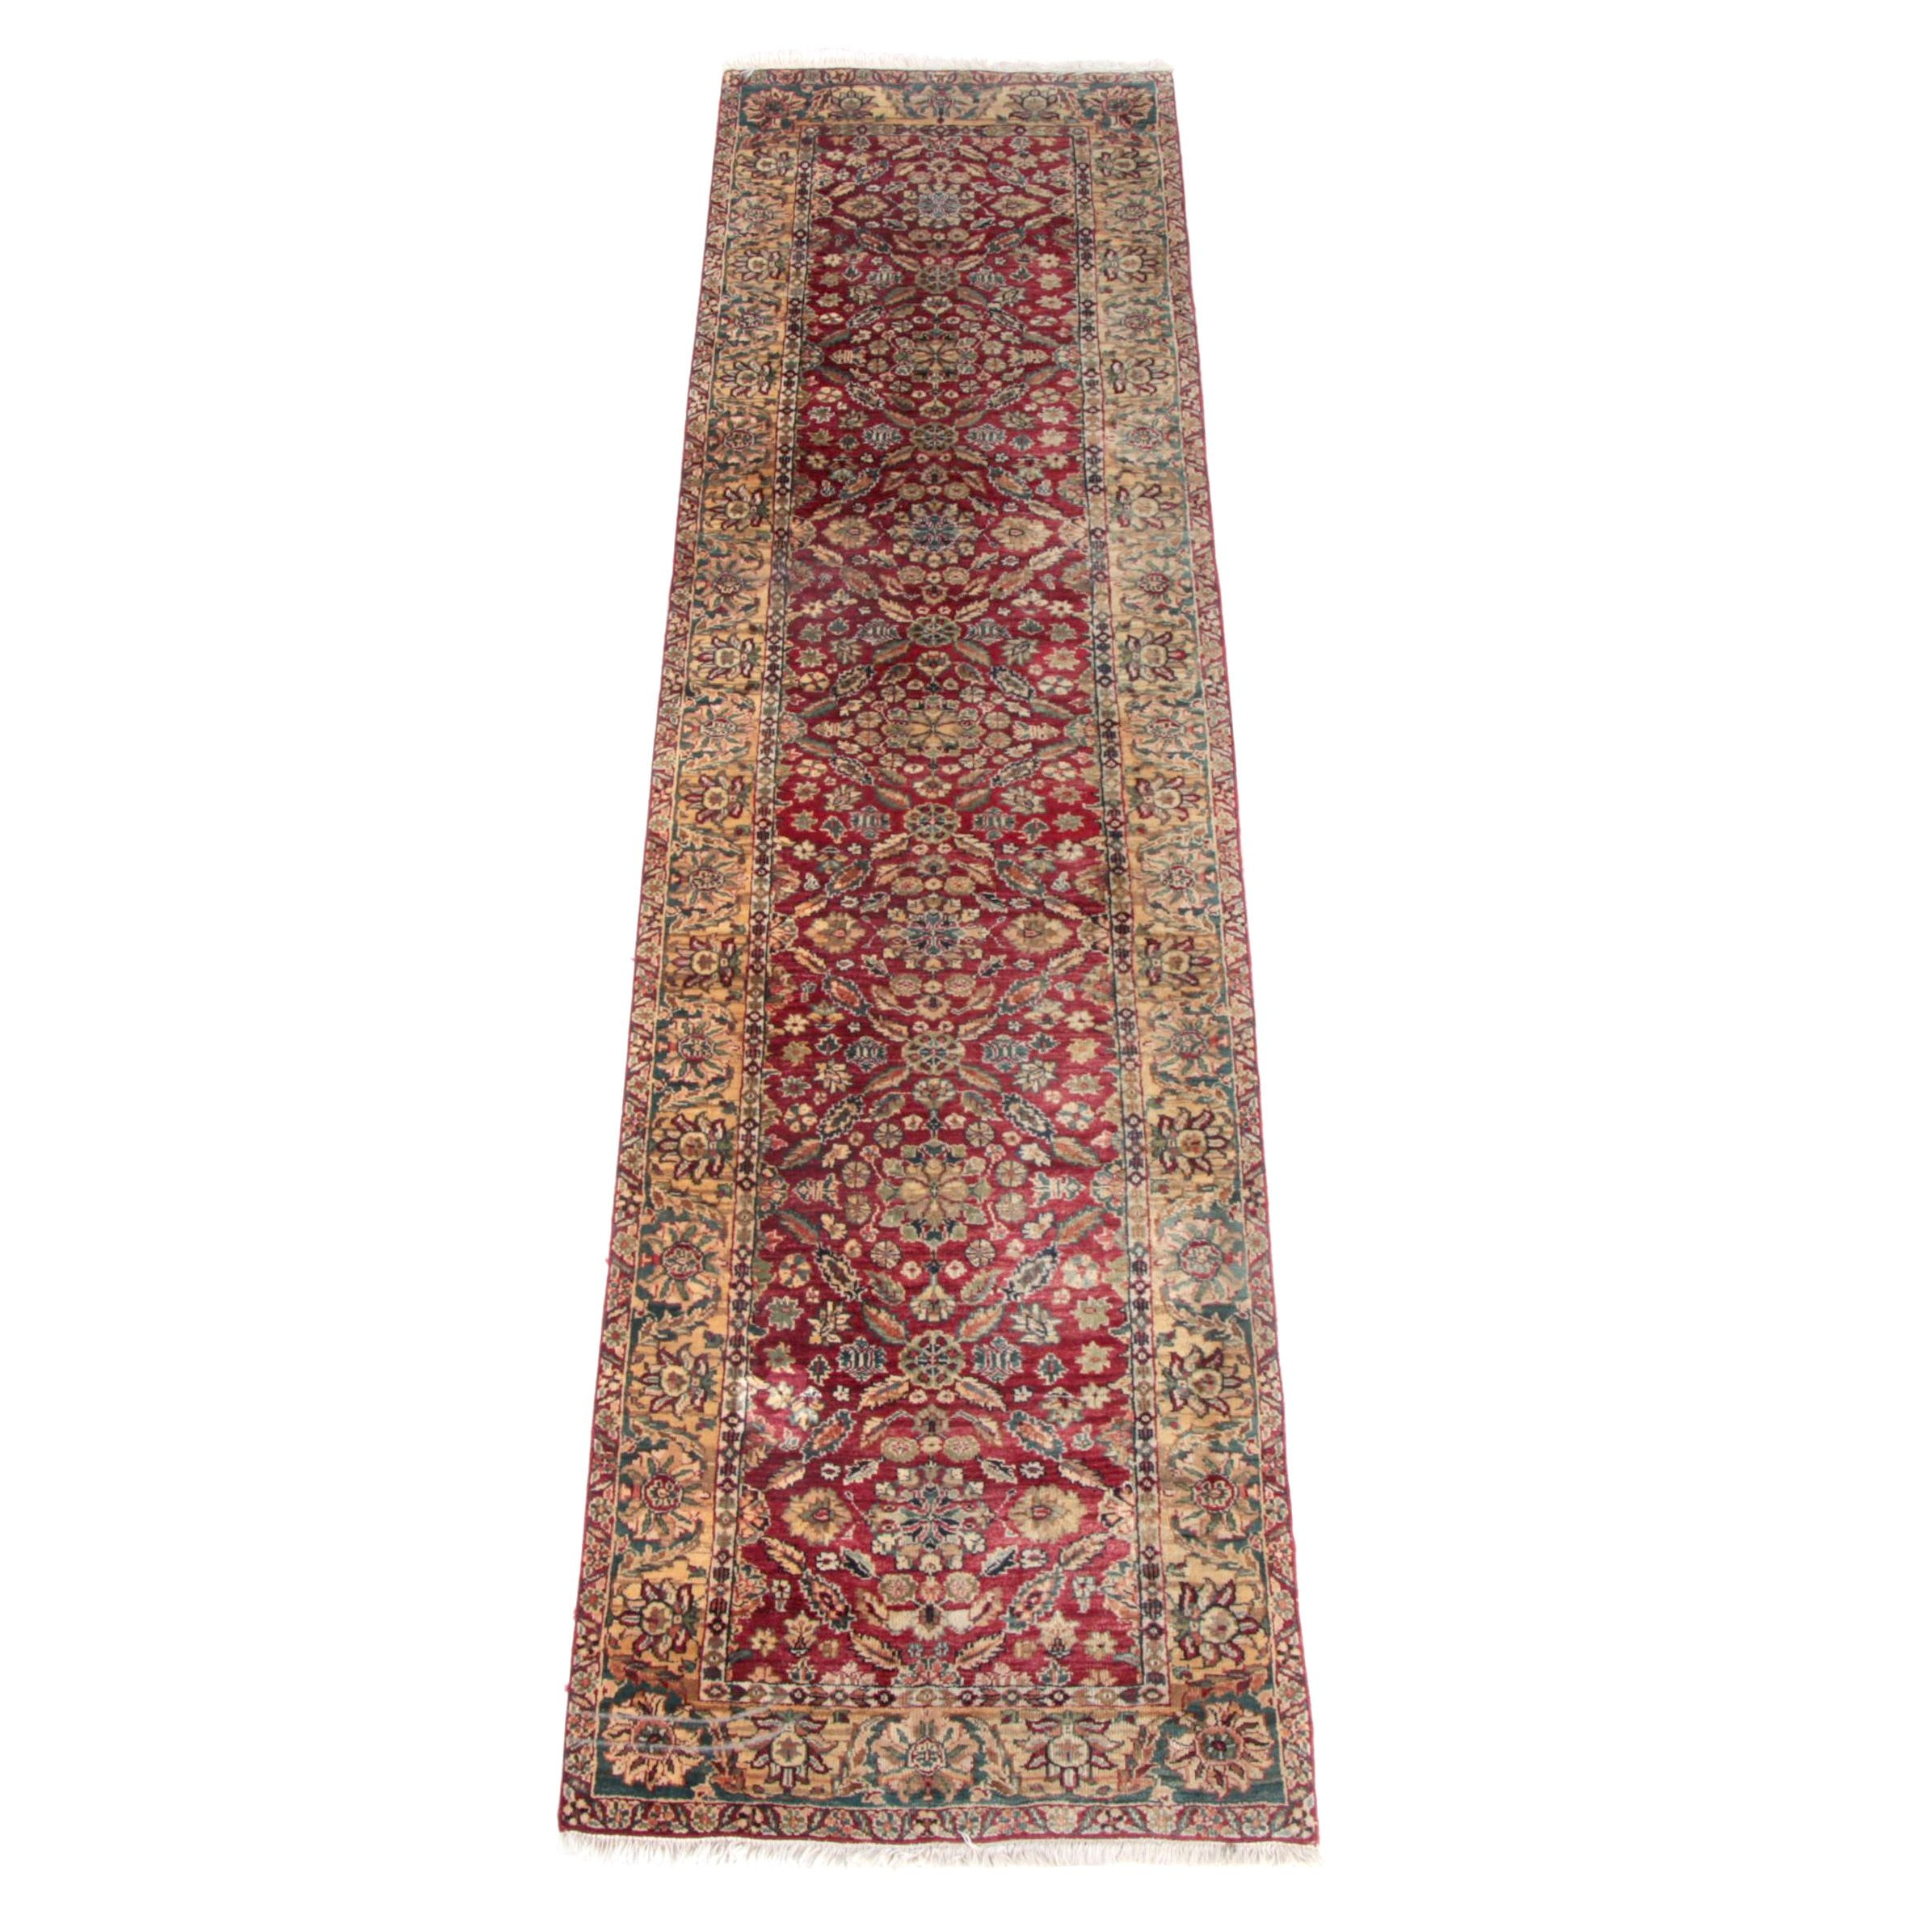 Hand-Knotted Indo-Persian Peshawar Style Wool Carpet Runner